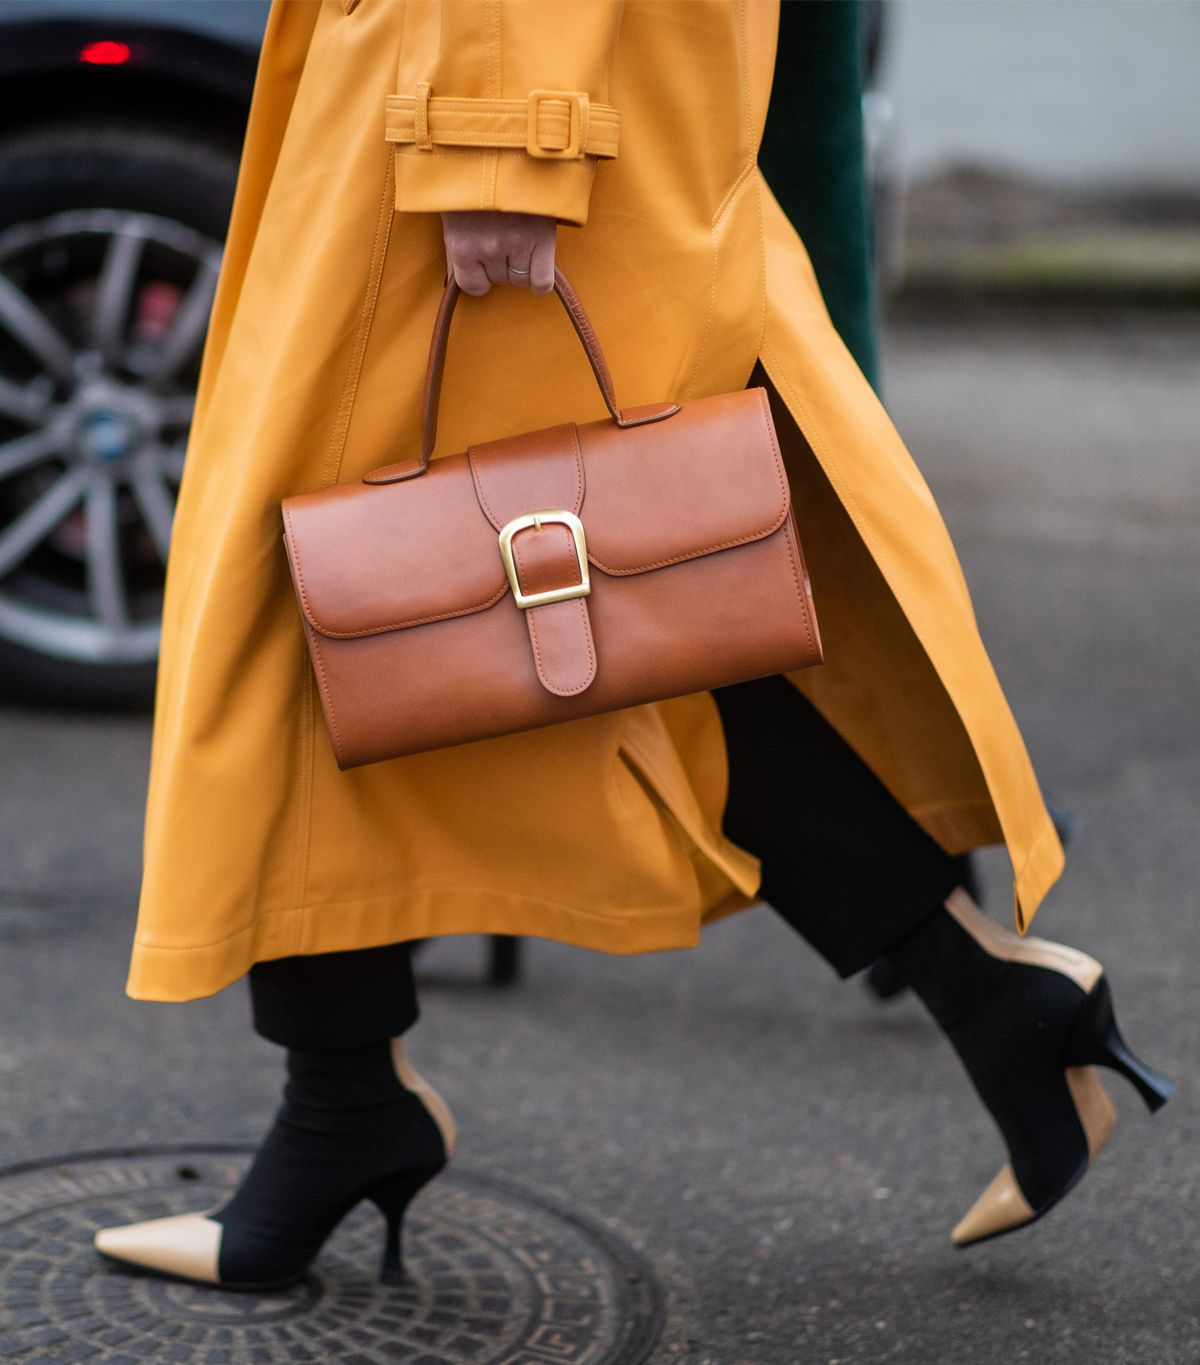 The 5 New It Bags Our Fashion Friends Are Already Carrying